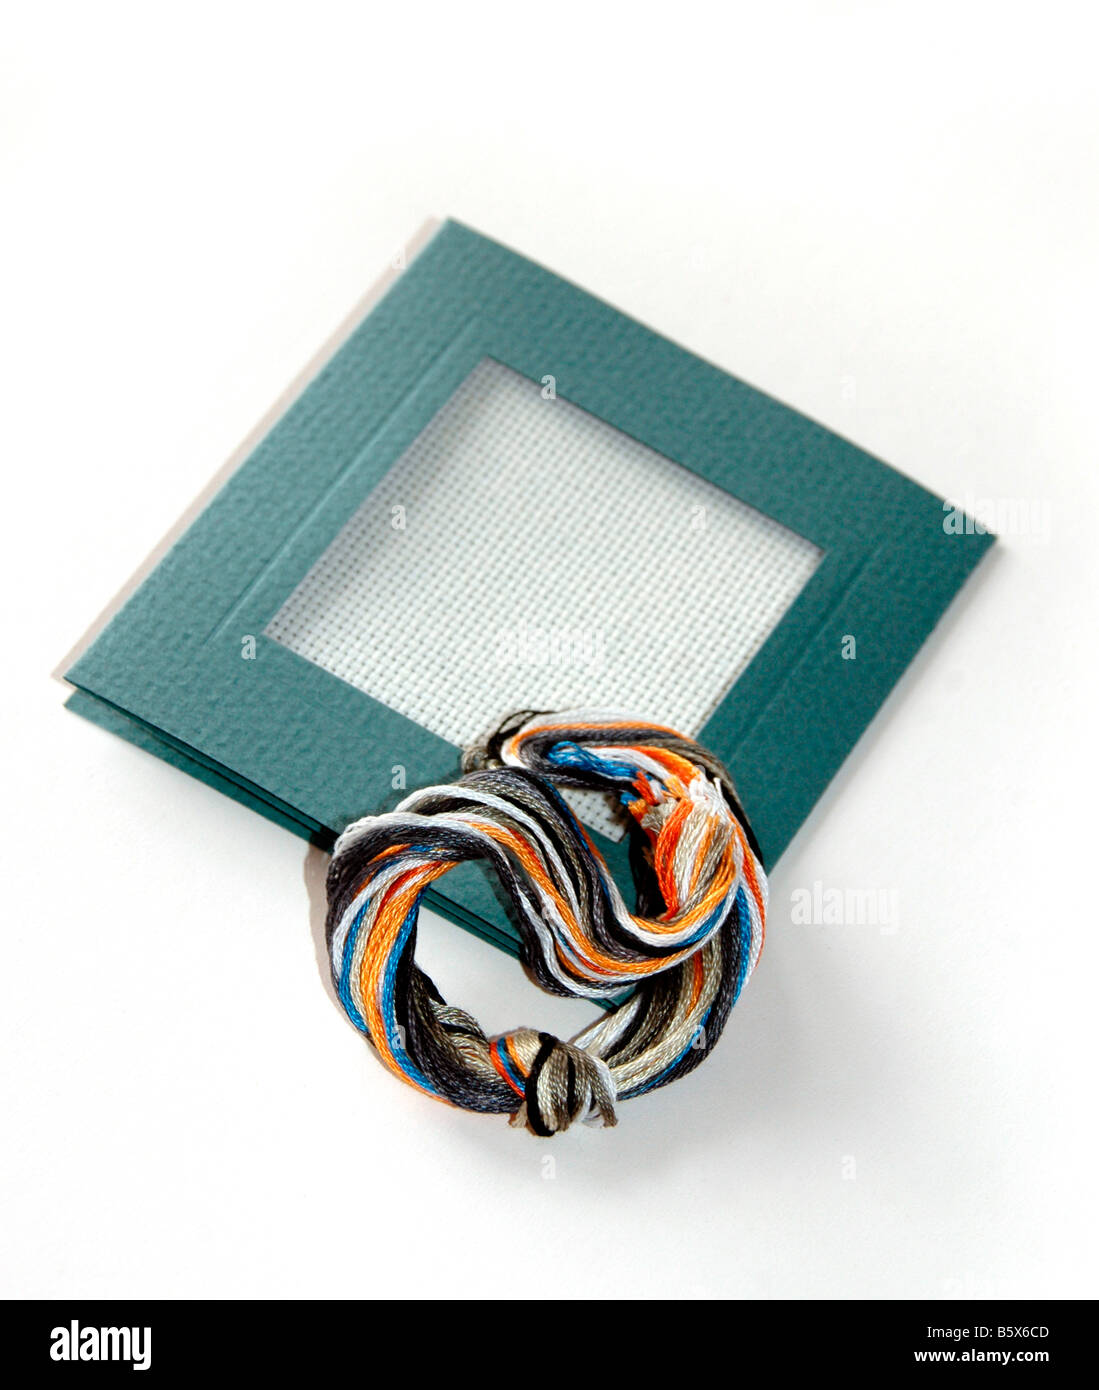 67aae48fff A miniature tapestry frame with a selection of coloured threads. - Stock  Image